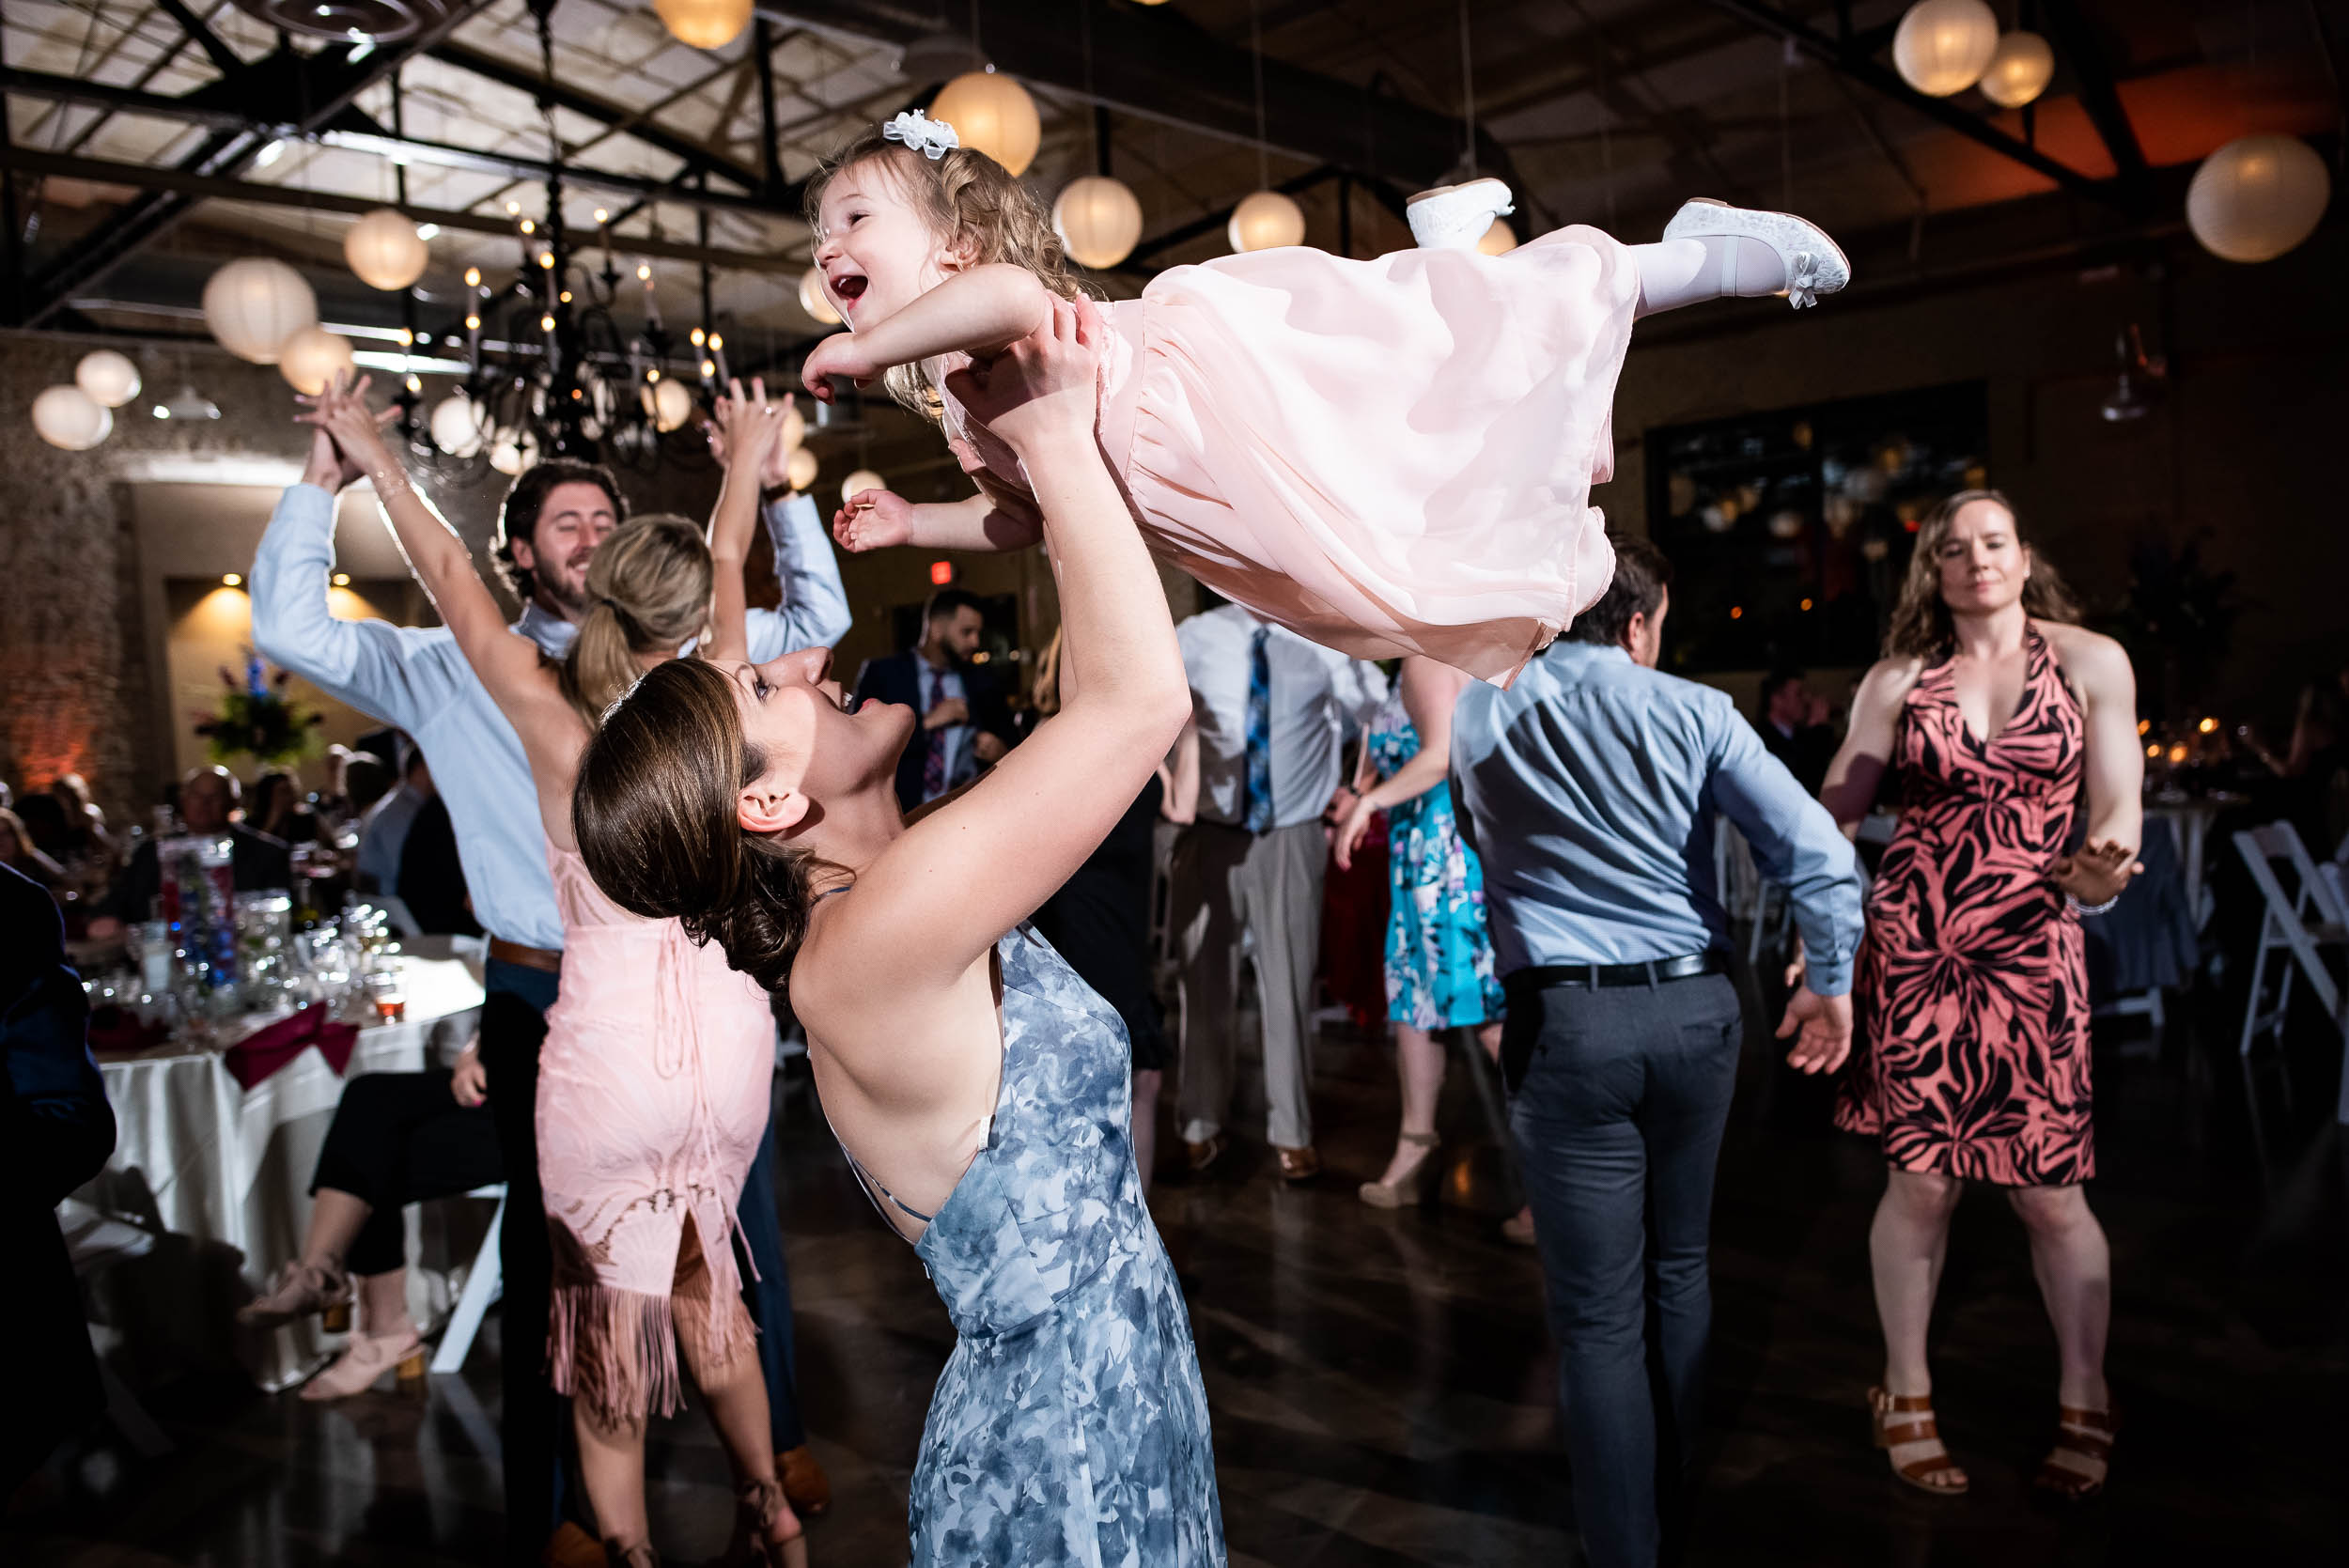 Wedding reception fun: Modern industrial Chicago wedding inside Prairie Street Brewhouse captured by J. Brown Photography. Find more wedding ideas at jbrownphotography.com!